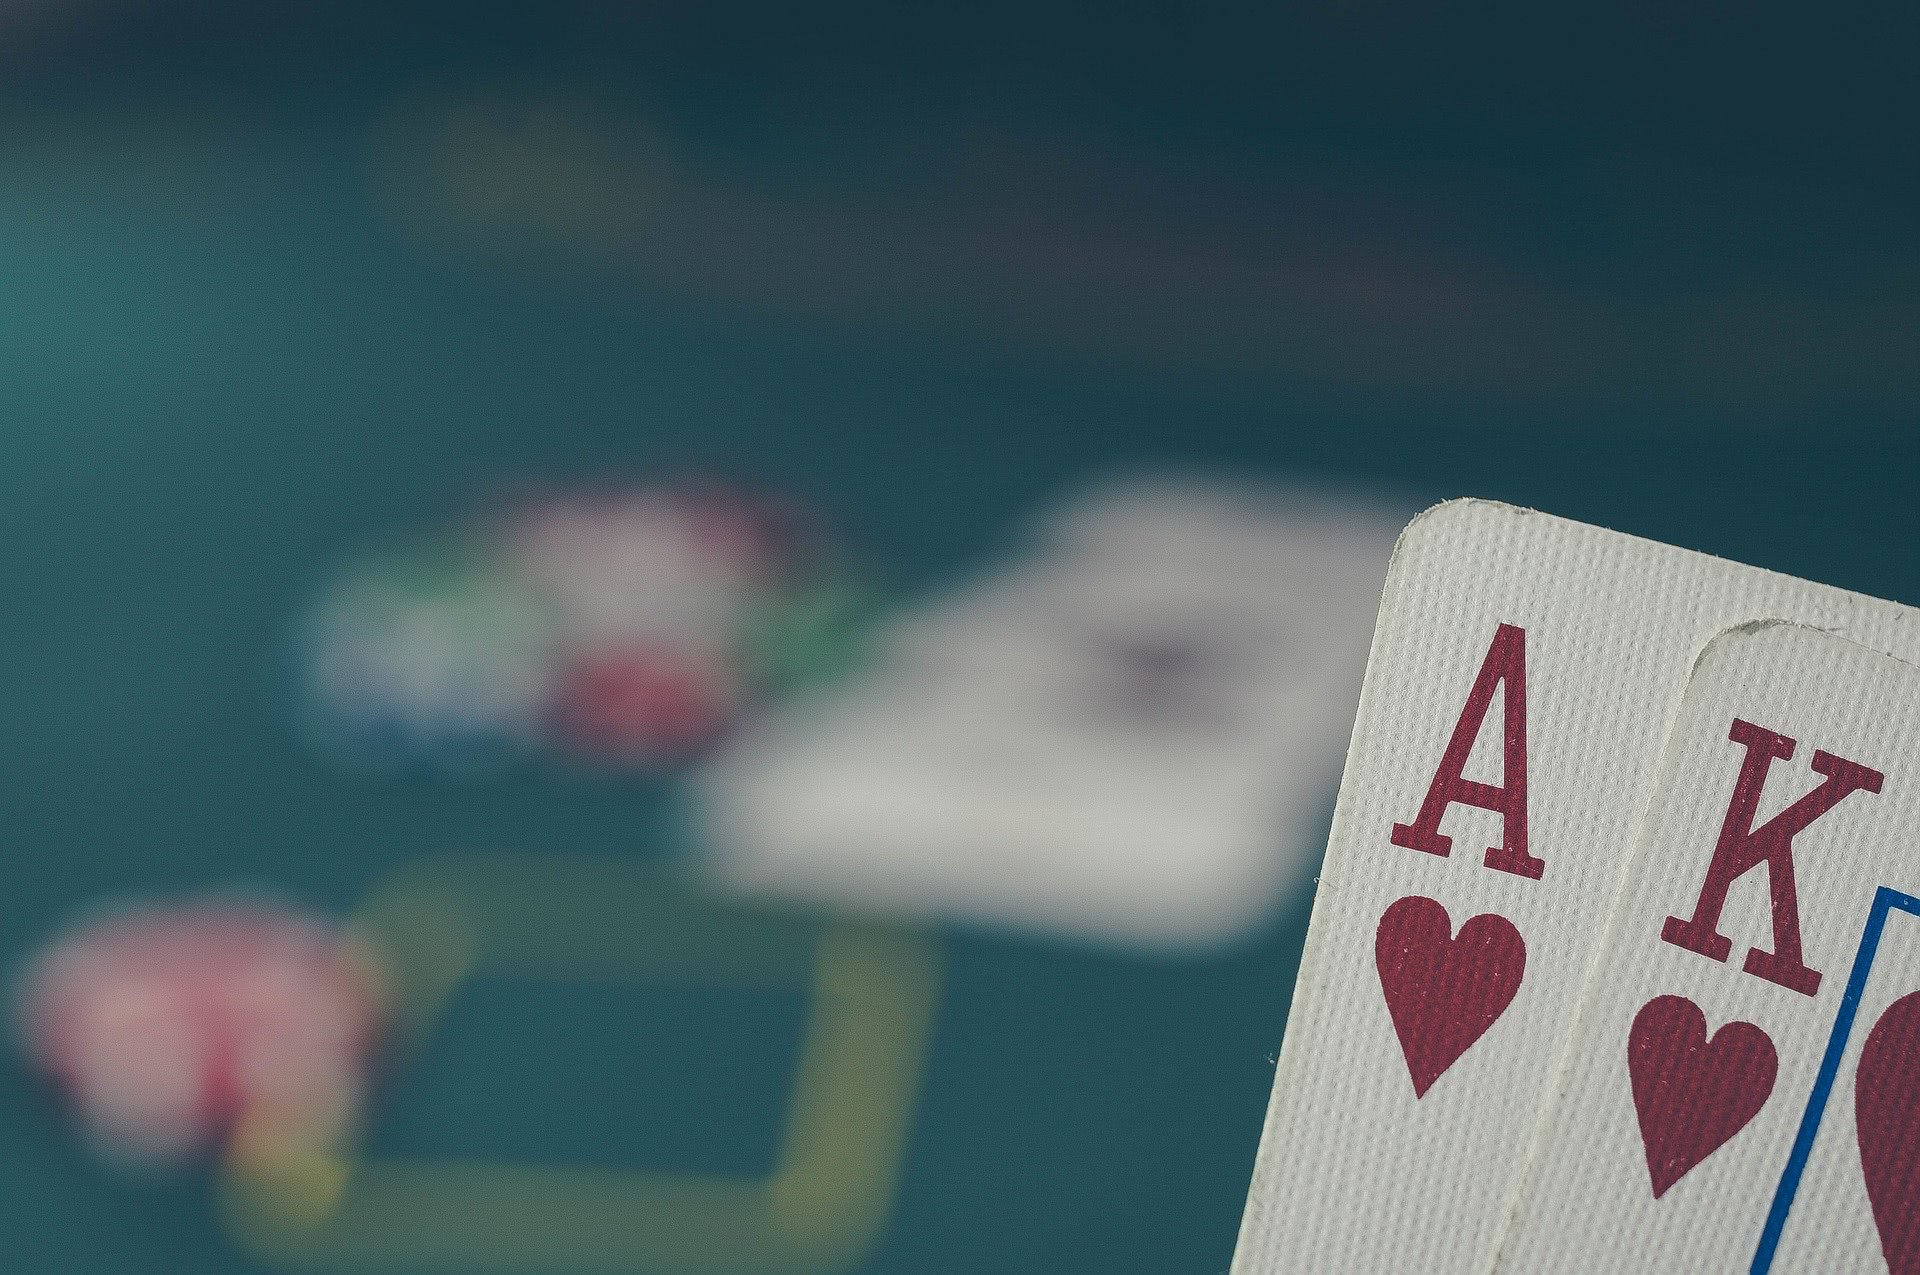 poker player holding a hand visible to the viewer